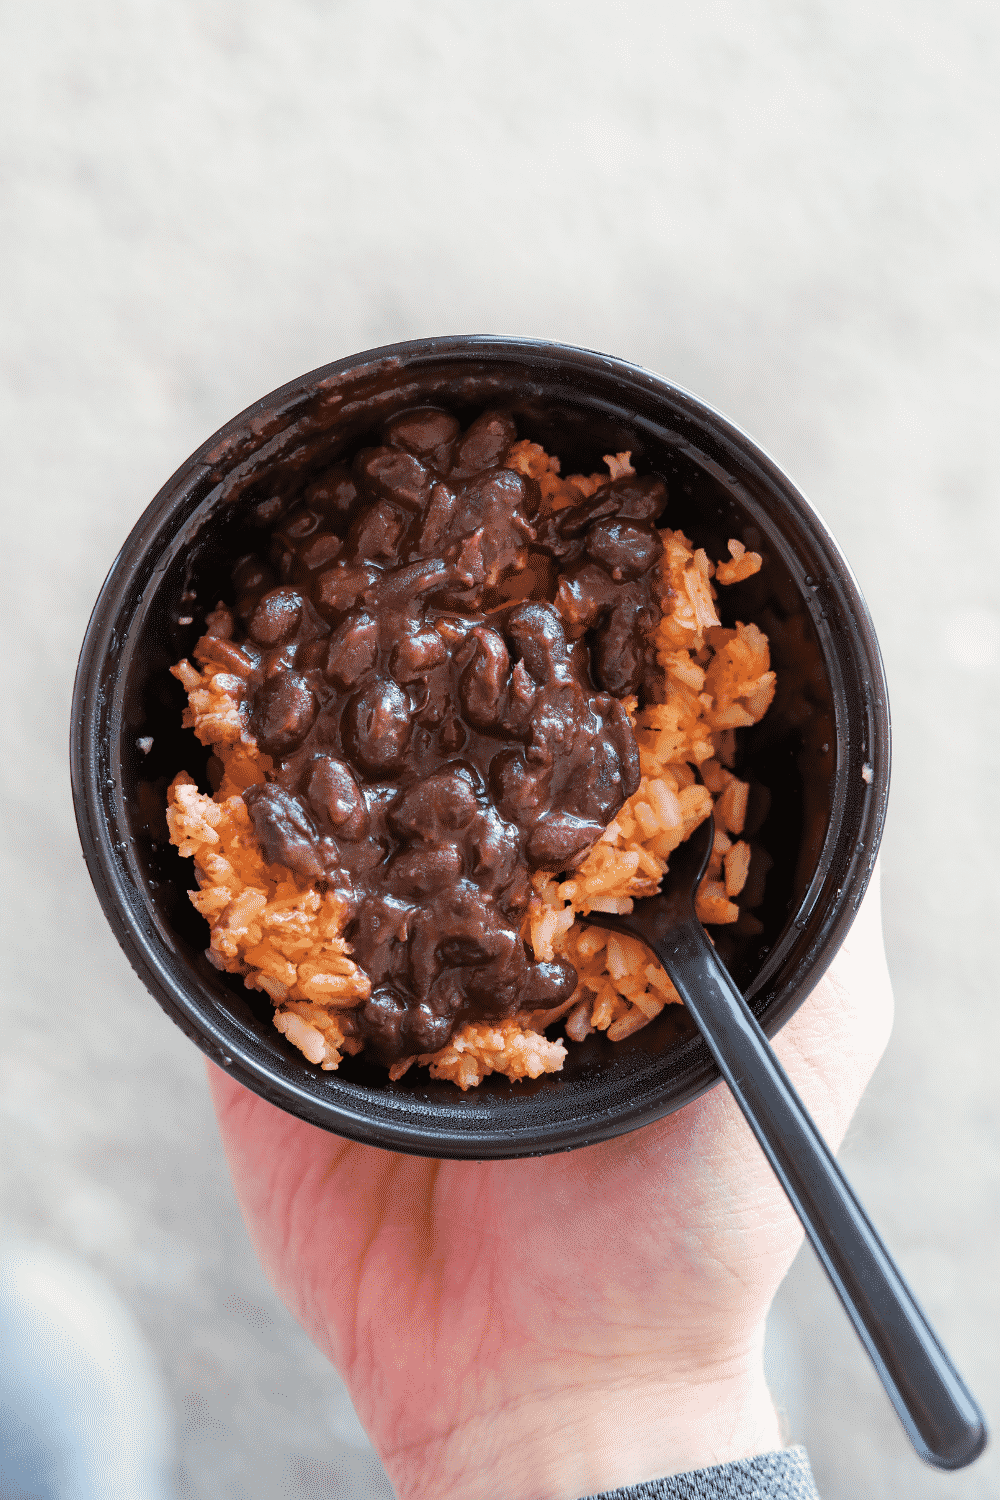 A hand holding a bowl of Taco Bell black beans and rice